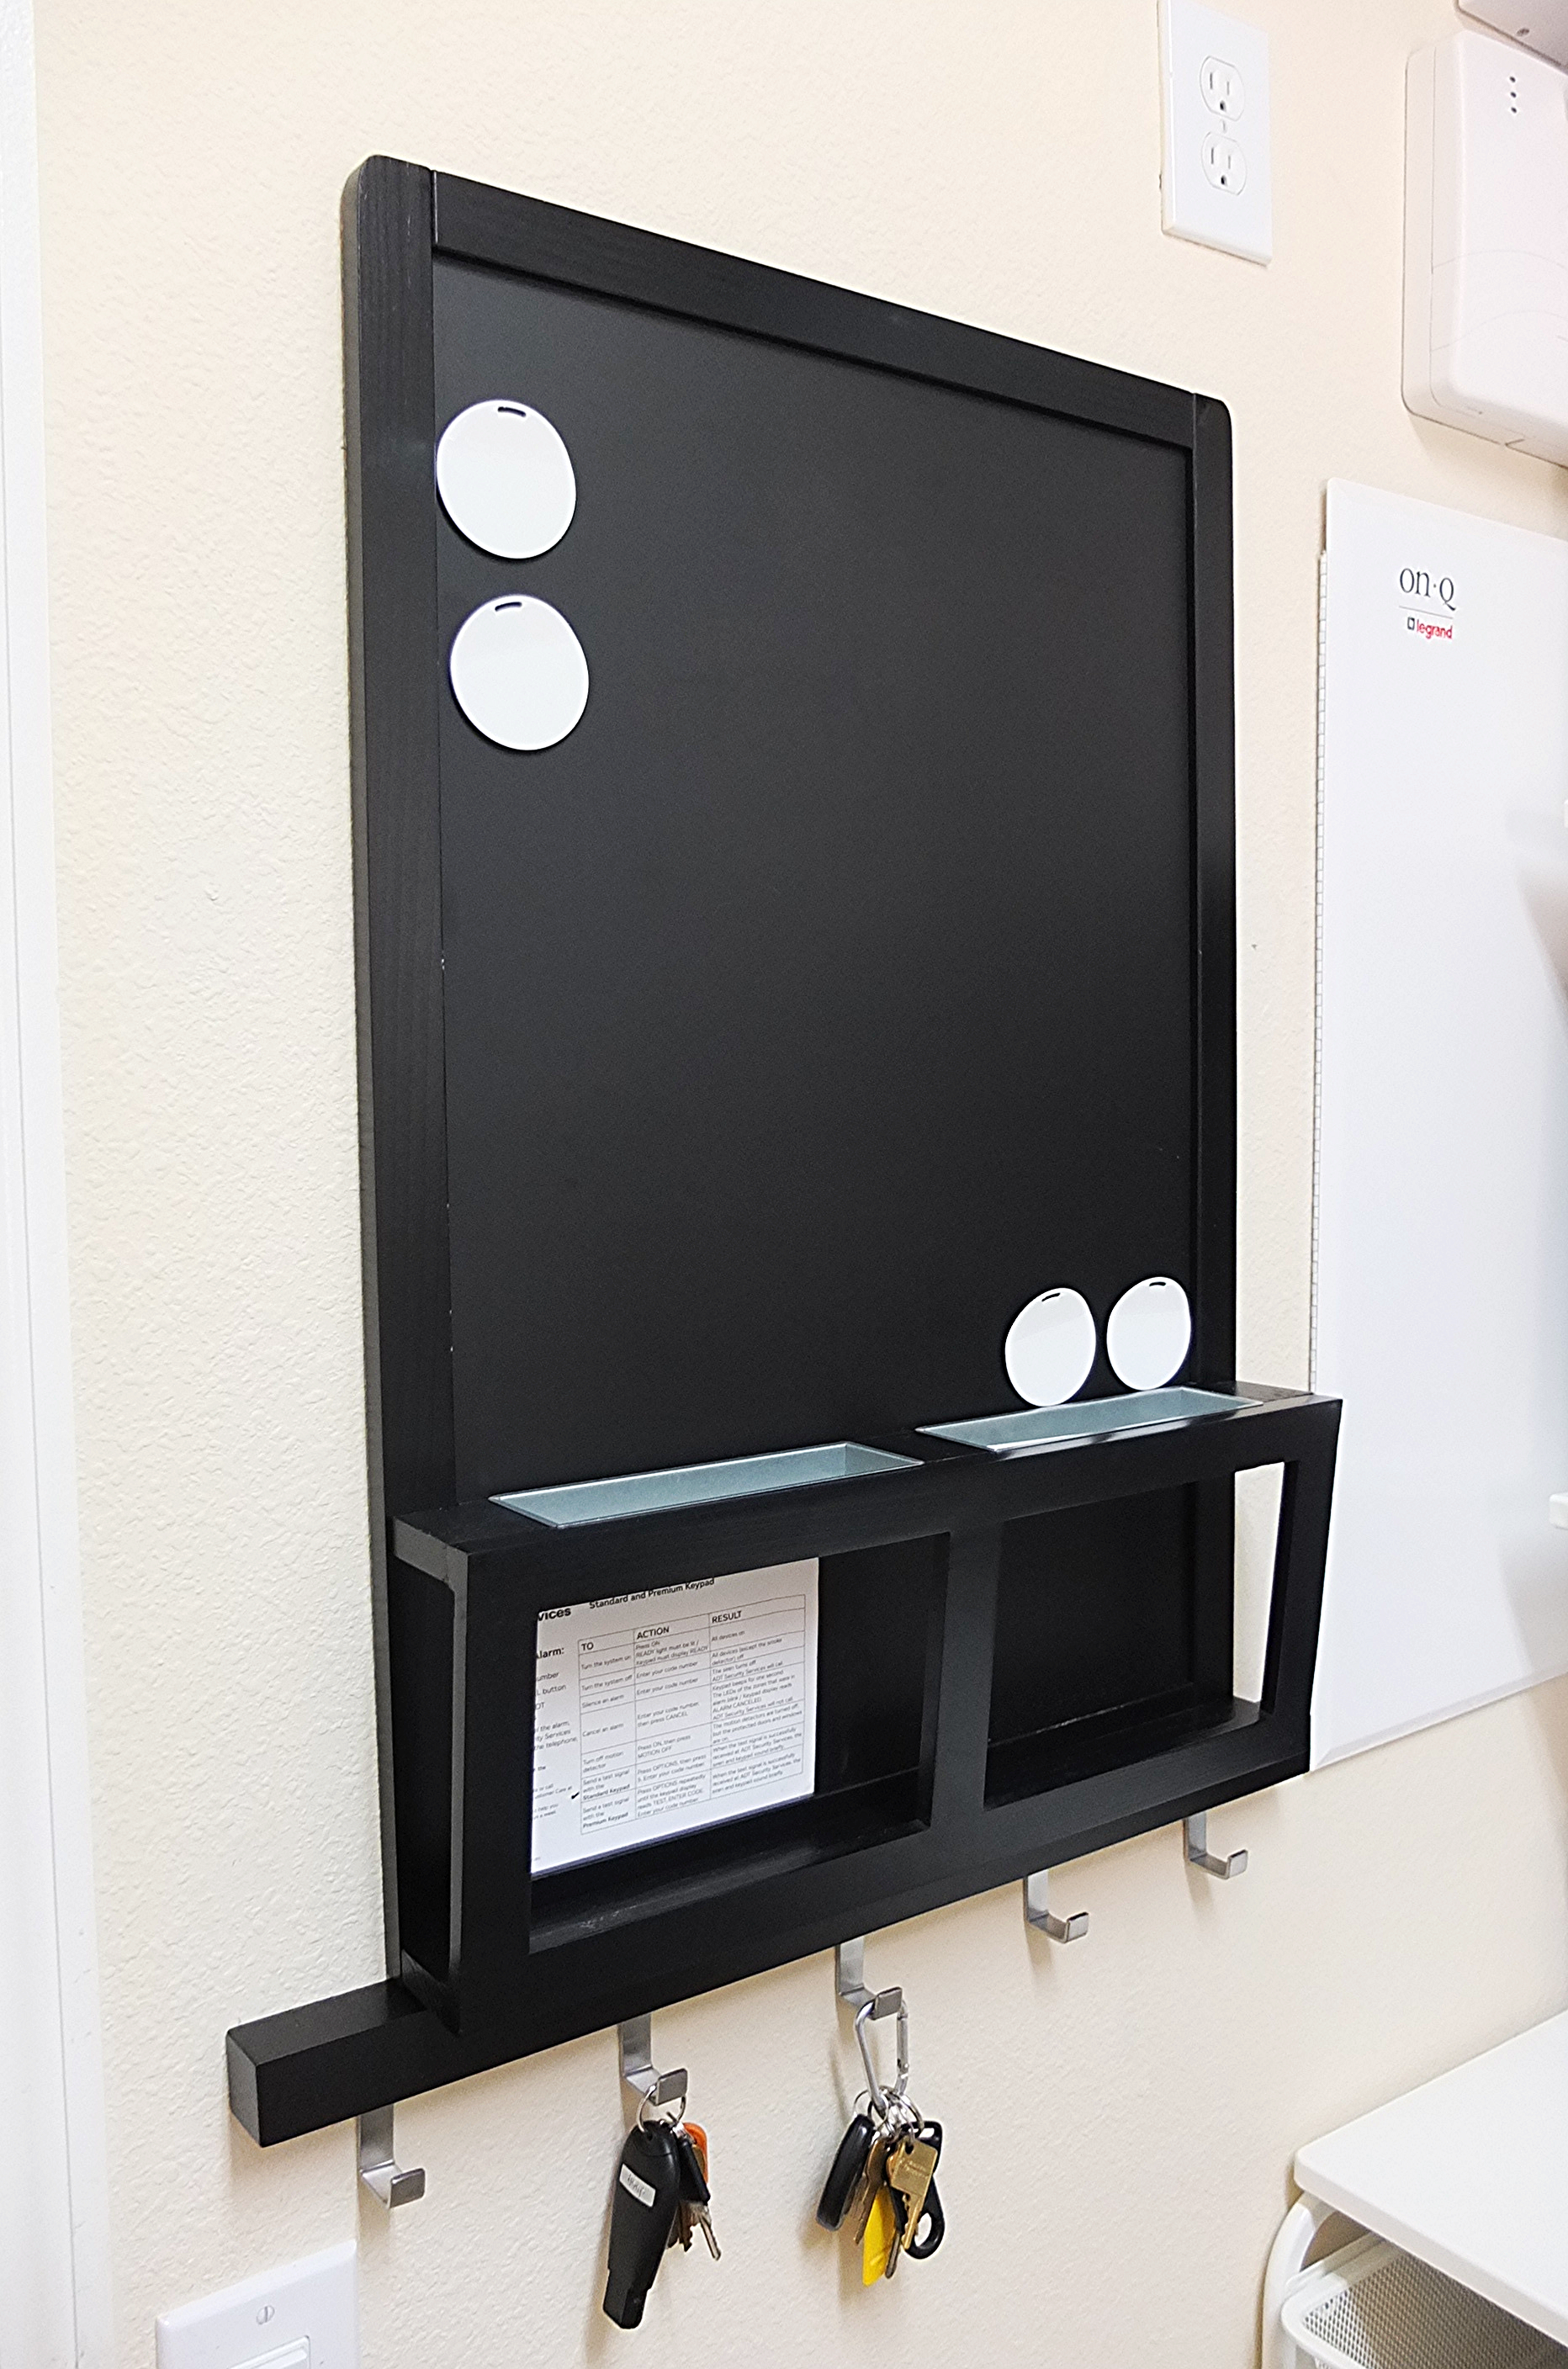 Hang The Luns Noticeboard Wherever Action Is Leave Notes Make Ping Lists And Keep Small Papers Handy With Its Magnetic Chalkboard Surface